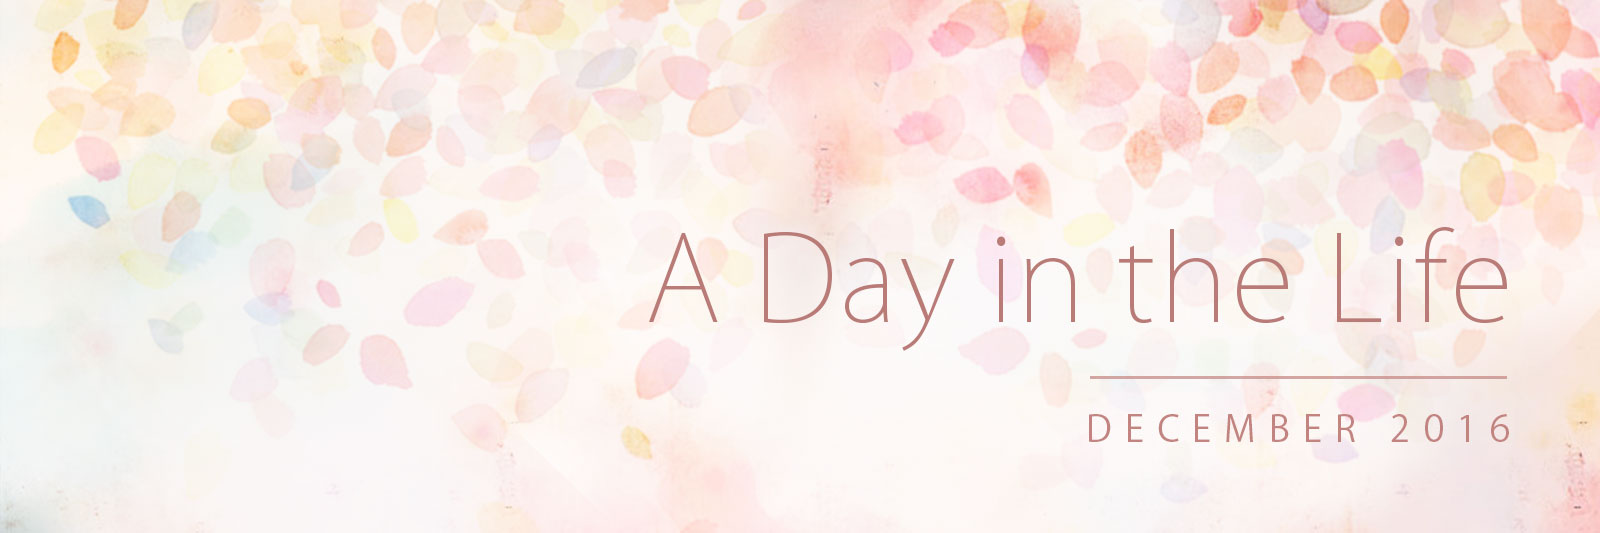 Banner for 'A Day in the Life': December 2016